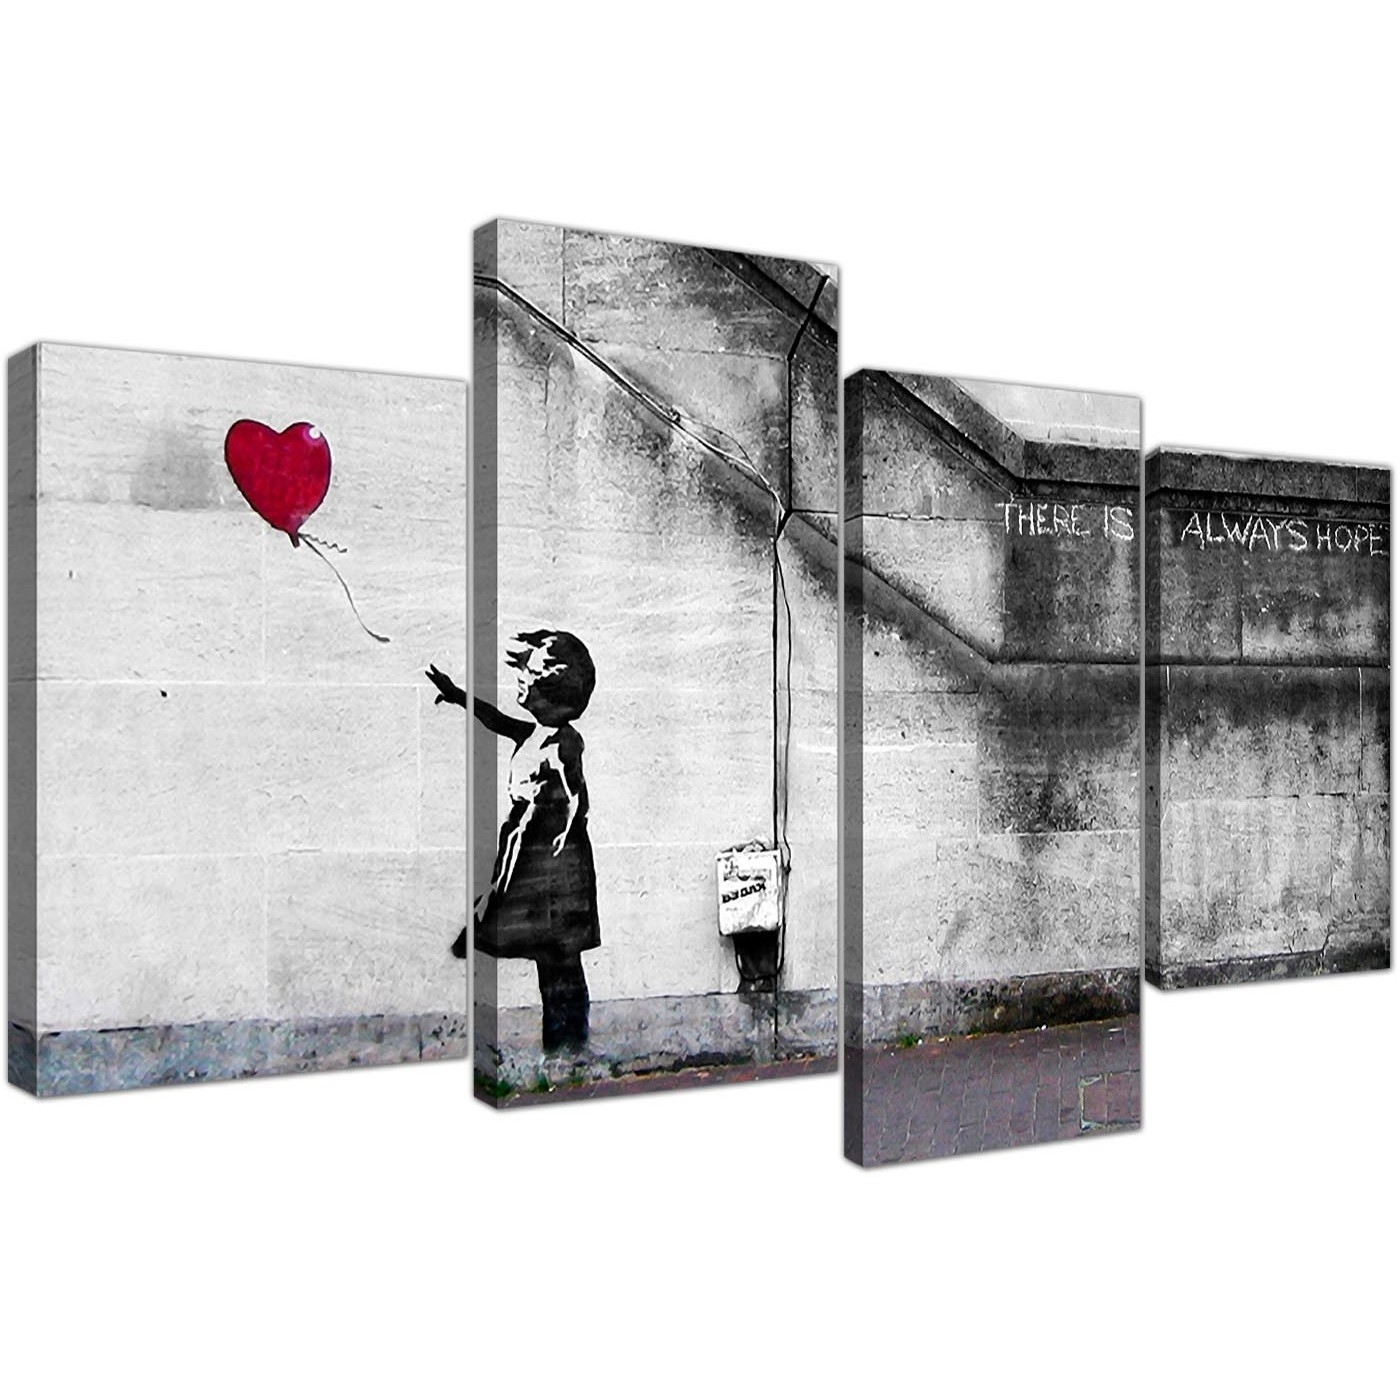 Large Banksy Canvas Prints – Balloon Girl Red Regarding Latest Red Canvas Wall Art (View 10 of 15)